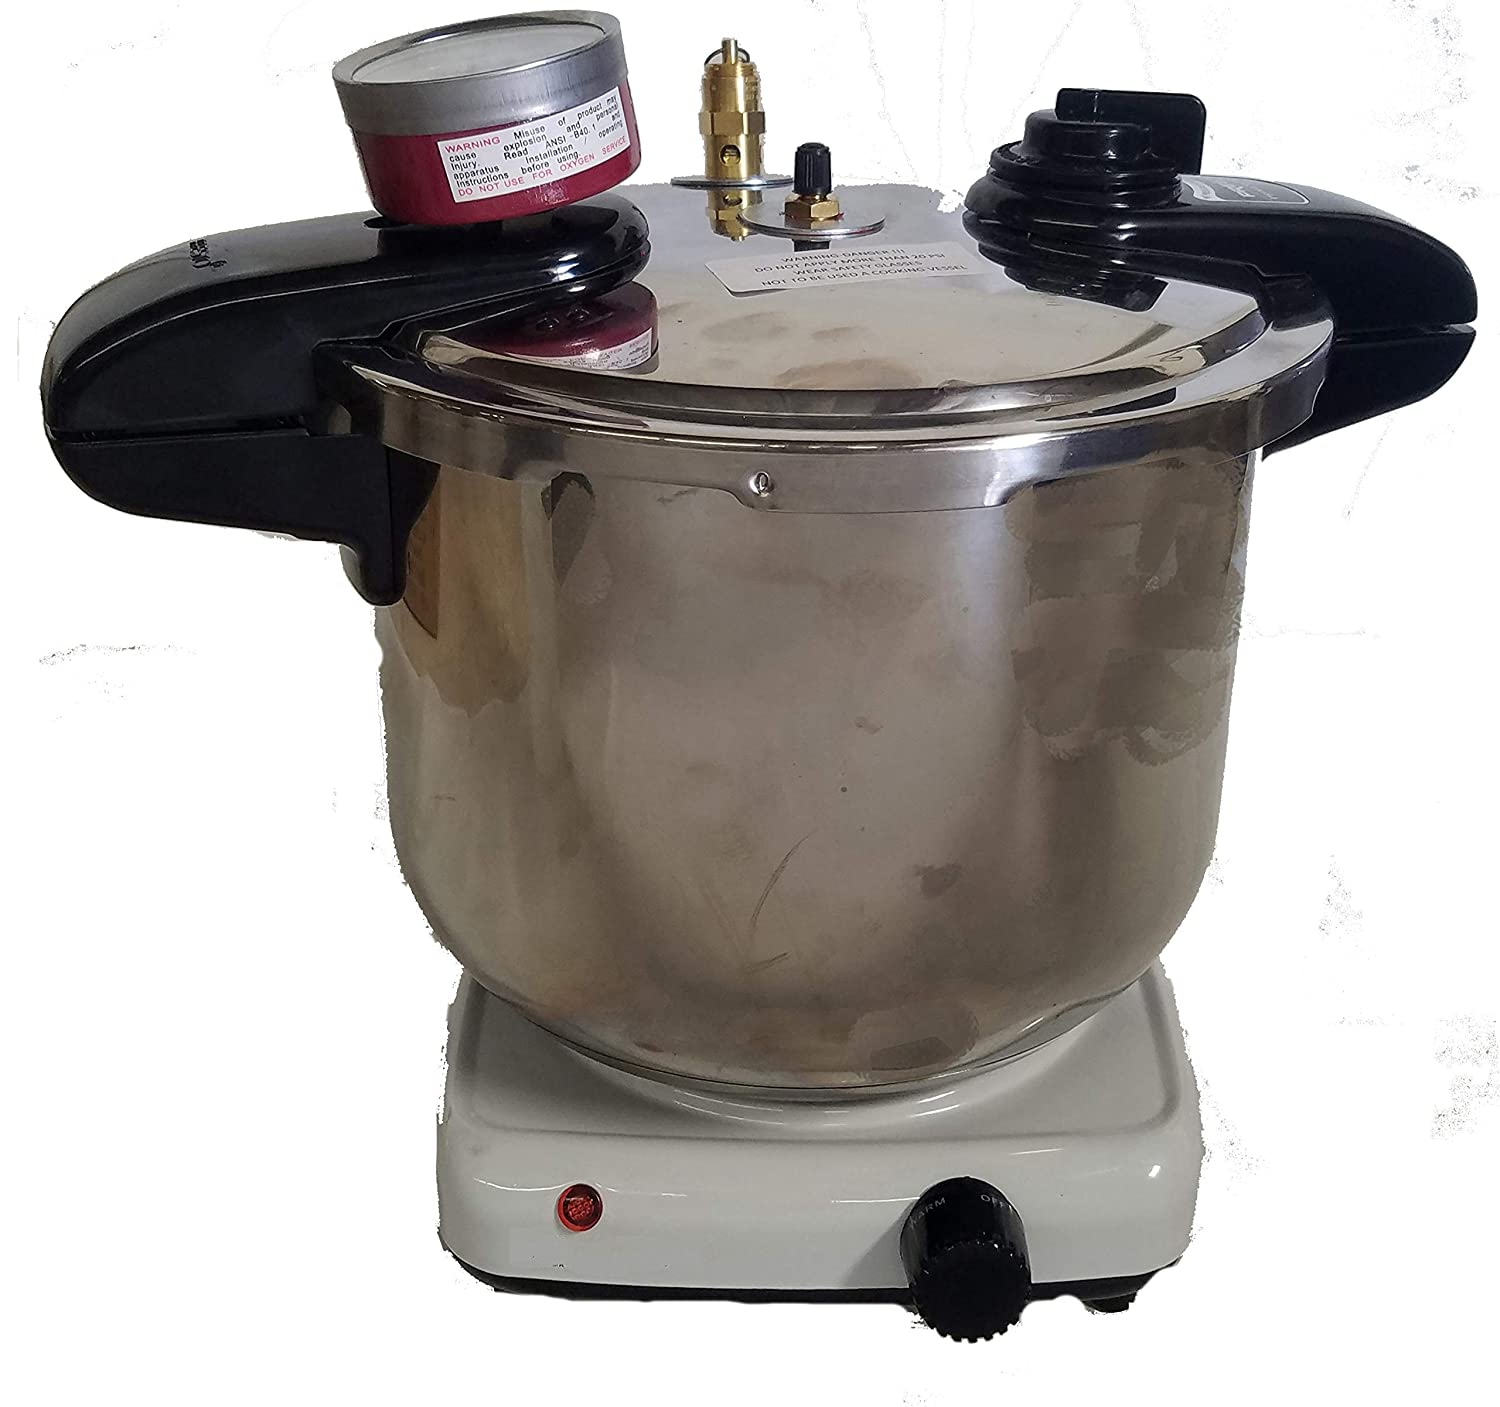 Denture Pressure Pot 8 Quart, Heated